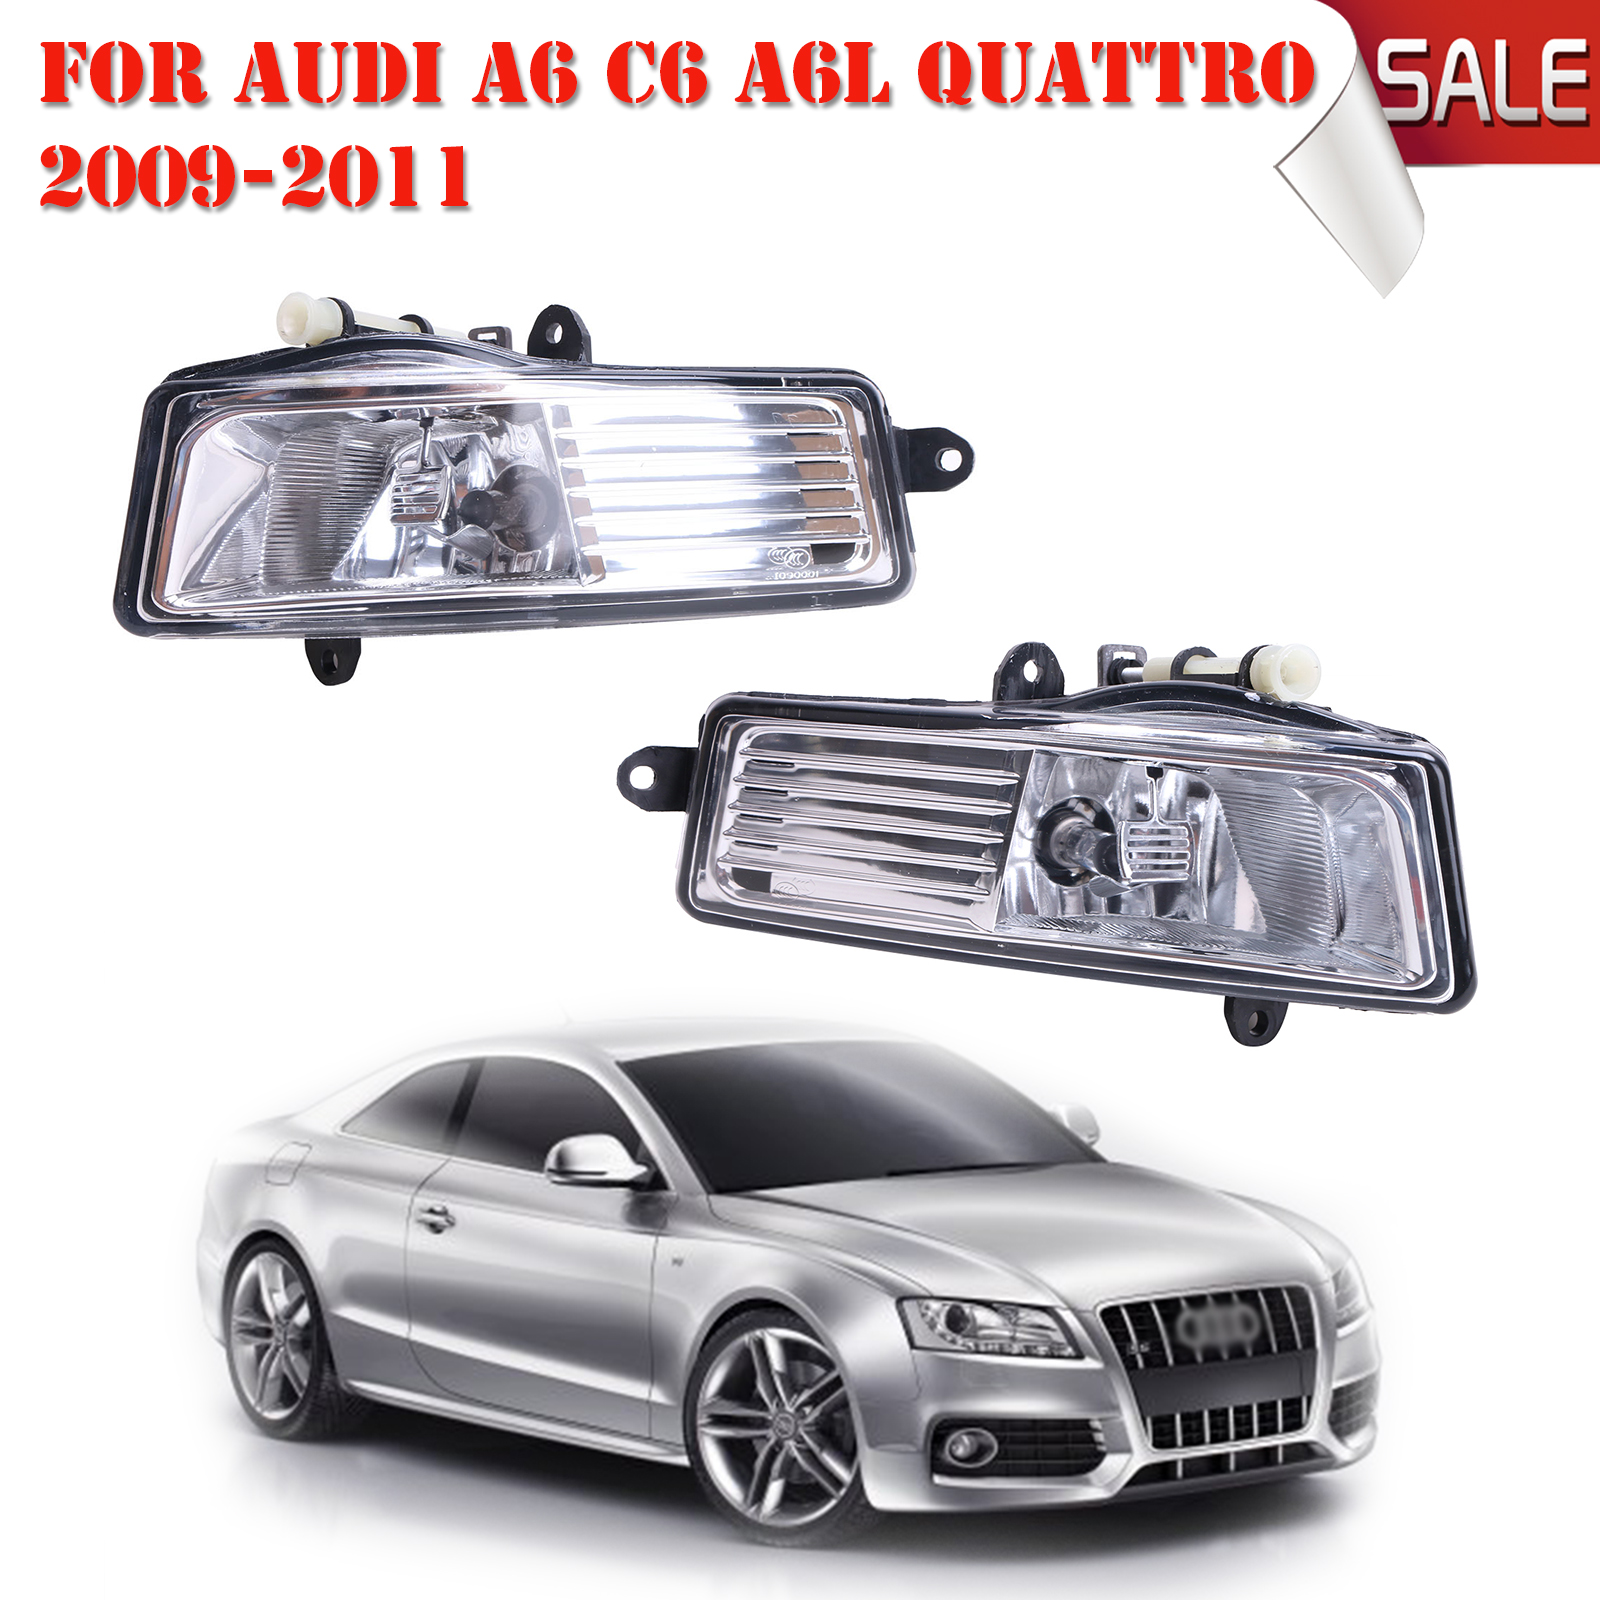 1 Pair Front Fog Lights Foglamps Set For Audi A6 C6 A6L Quattro 2009 2010 2011 4FD941699A + 4FD9416700A Car-Styling #P313 коробка передач audi 80 quattro б у куплю в донецкой области